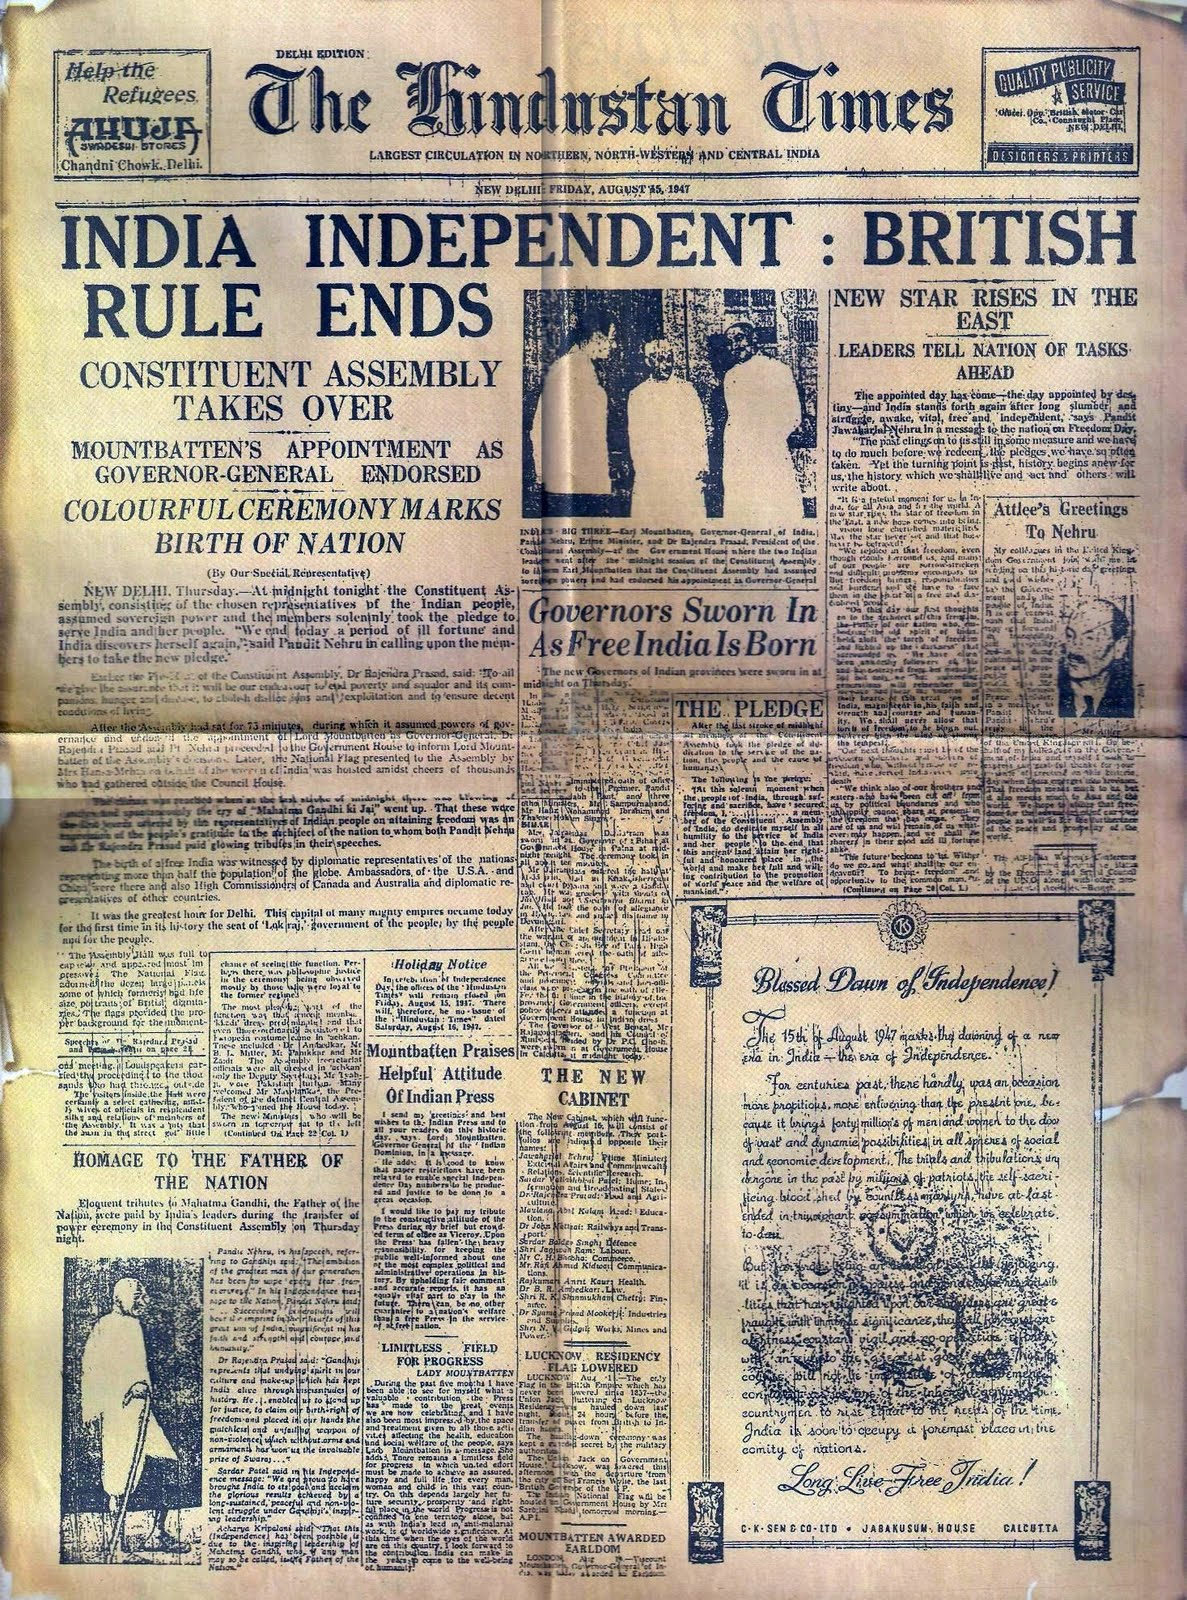 how n newspapers reported independence and partition in 1947